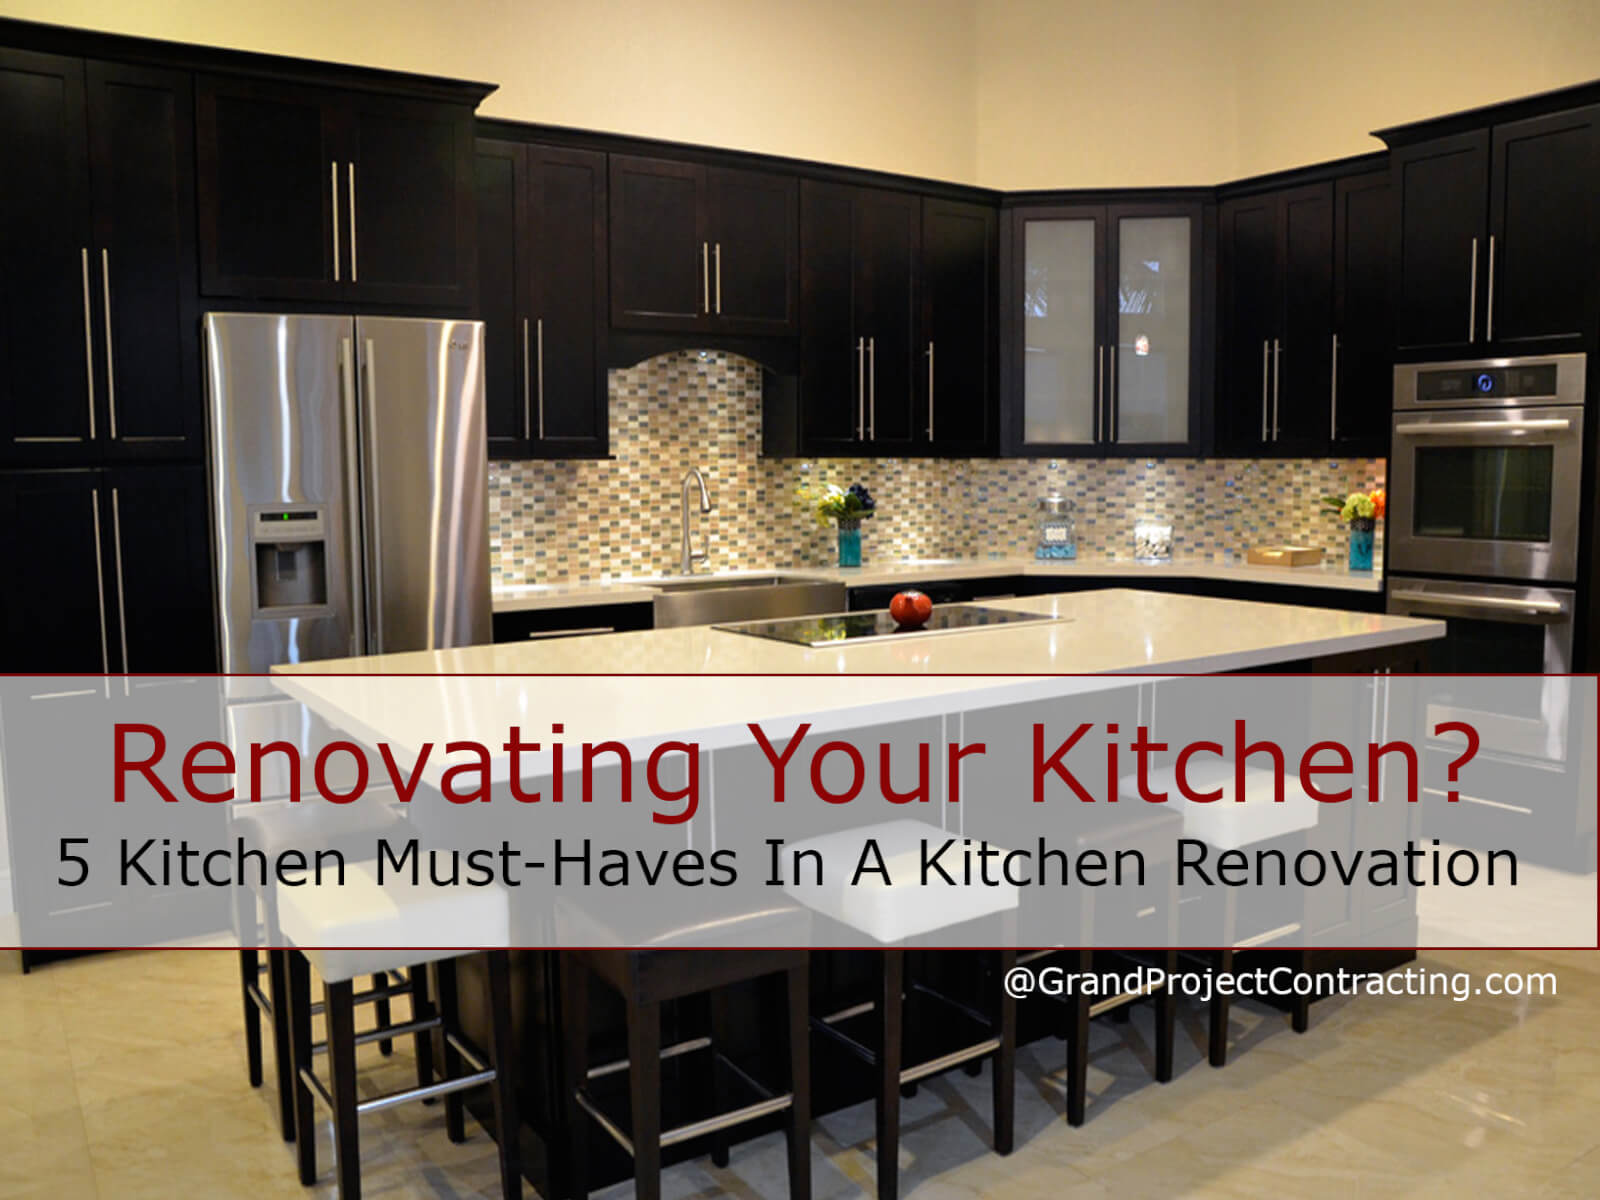 5 Dream Kitchen Must Haves: 5 Kitchen Must-Haves In A Kitchen Renovation